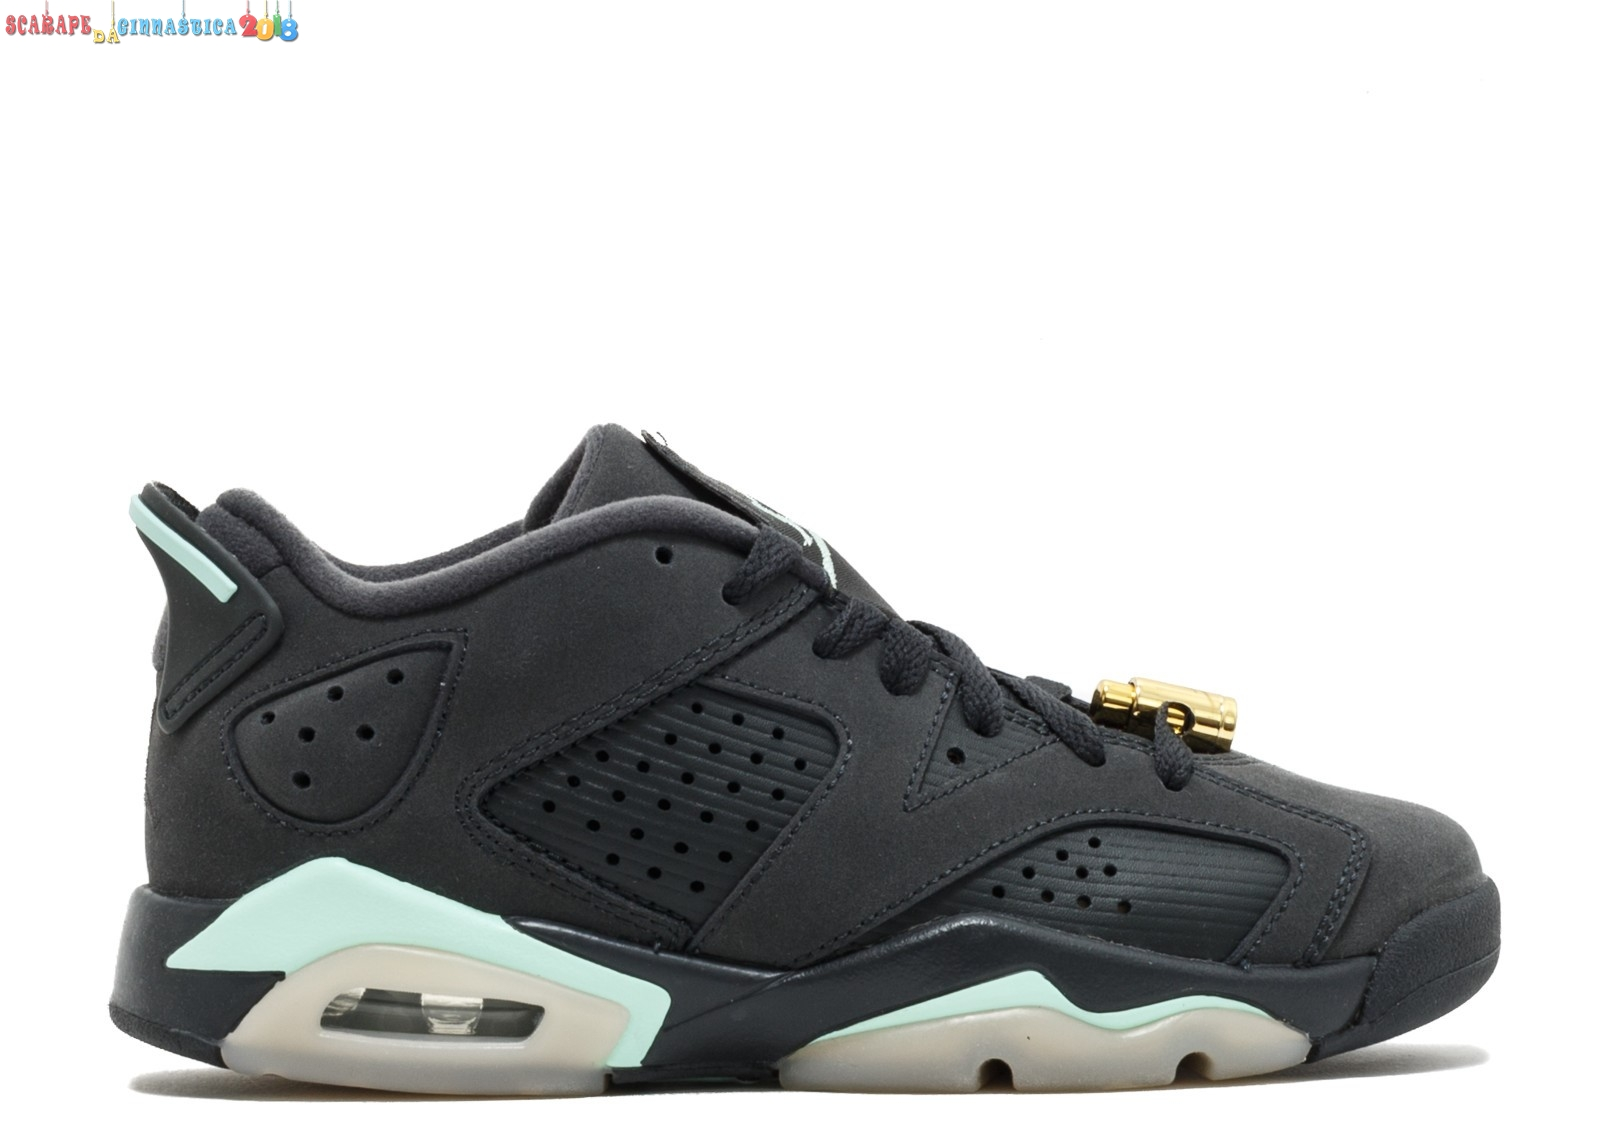 "Popolare Air Jordan 6 Retro Low Gg ""Mint Foam"" Nero (768878-015) - Scarpe da basket"